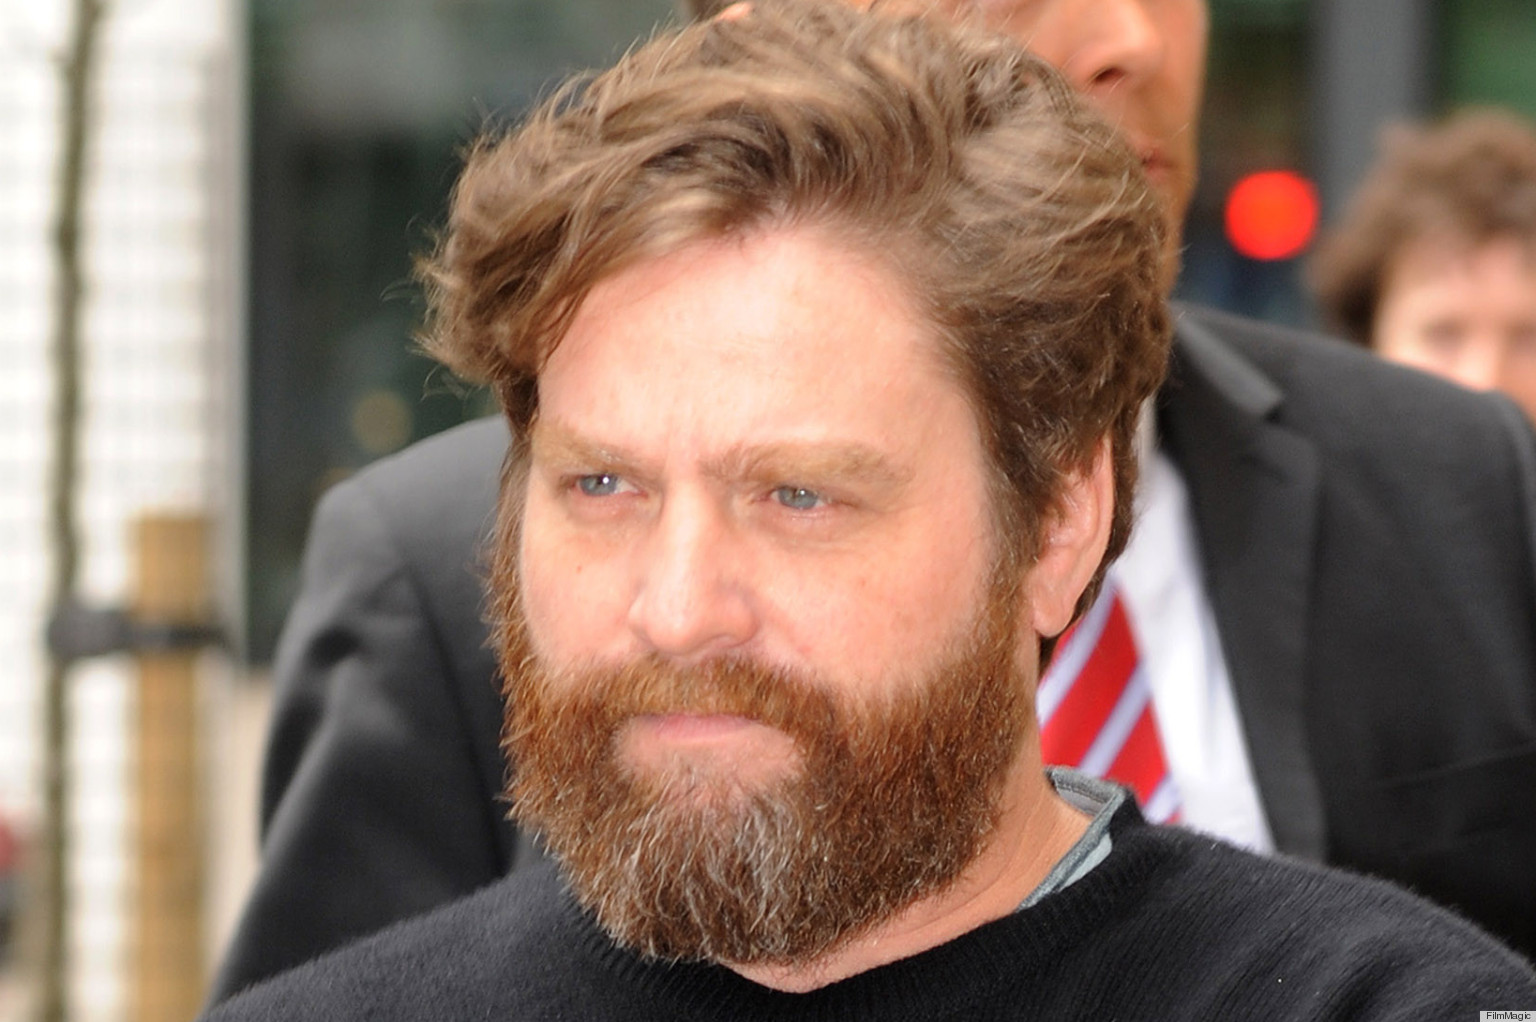 Galifianakis' Goatee Catches Everyone By Surprise (PHOTOS)   HuffPost